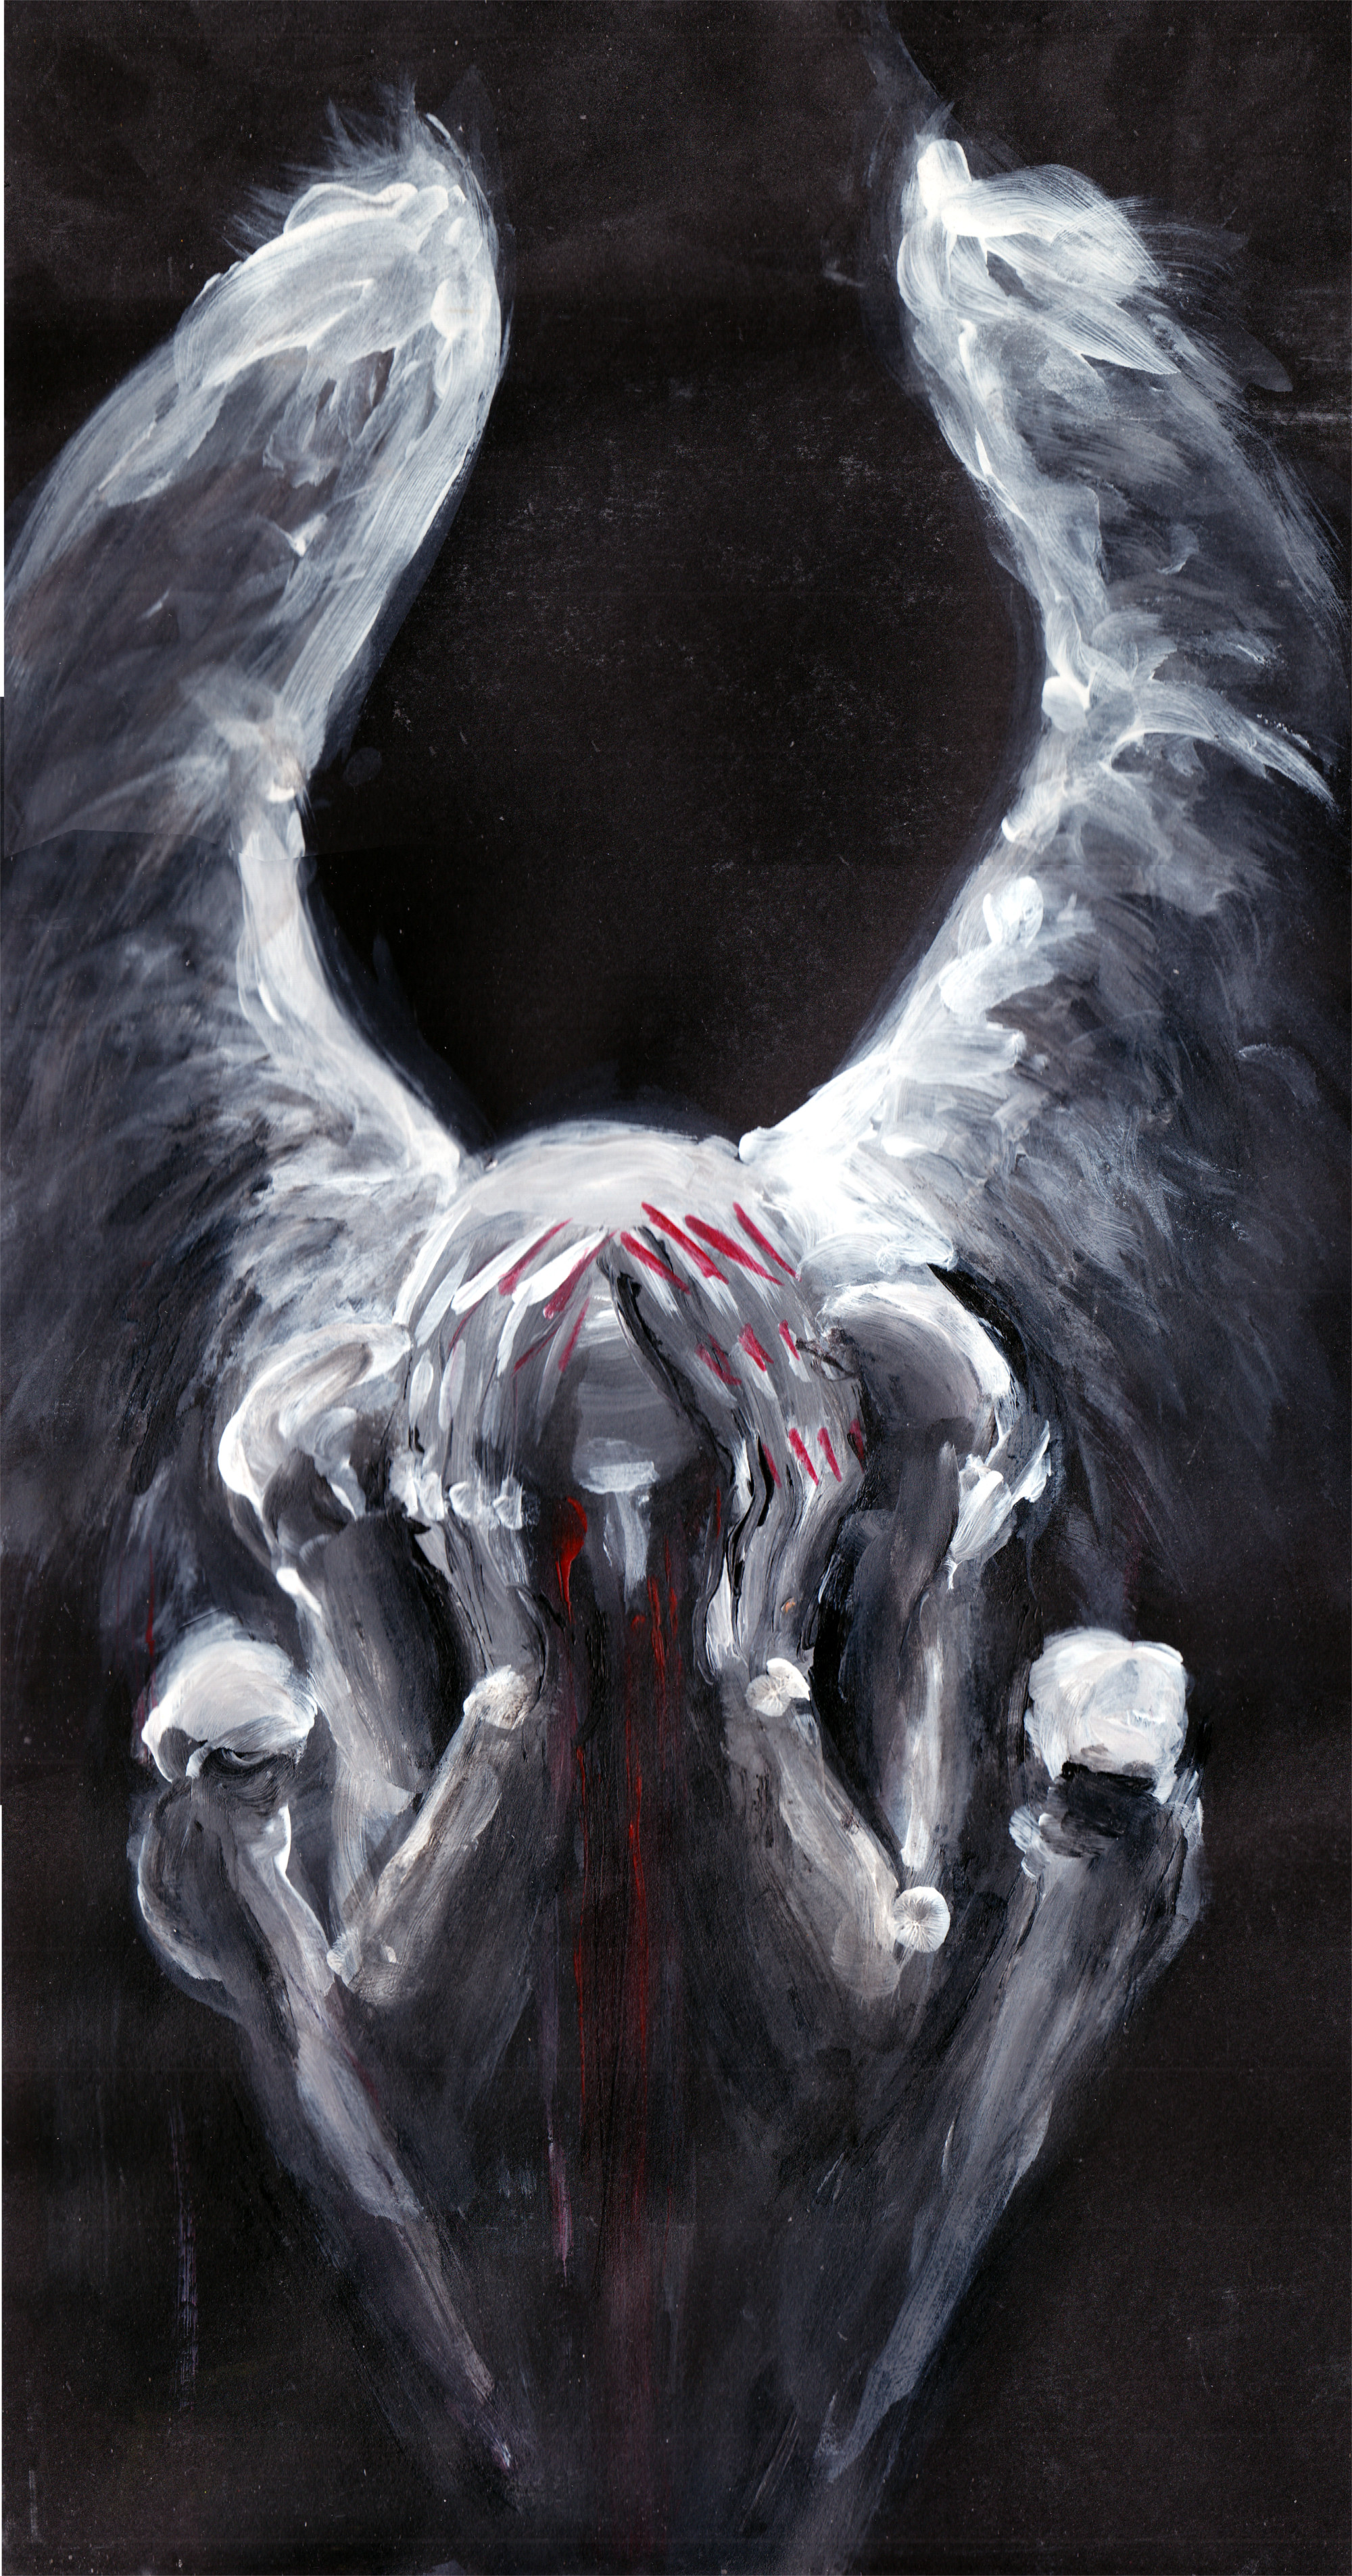 Angel In Despair by Veitstanzproject on DeviantArt